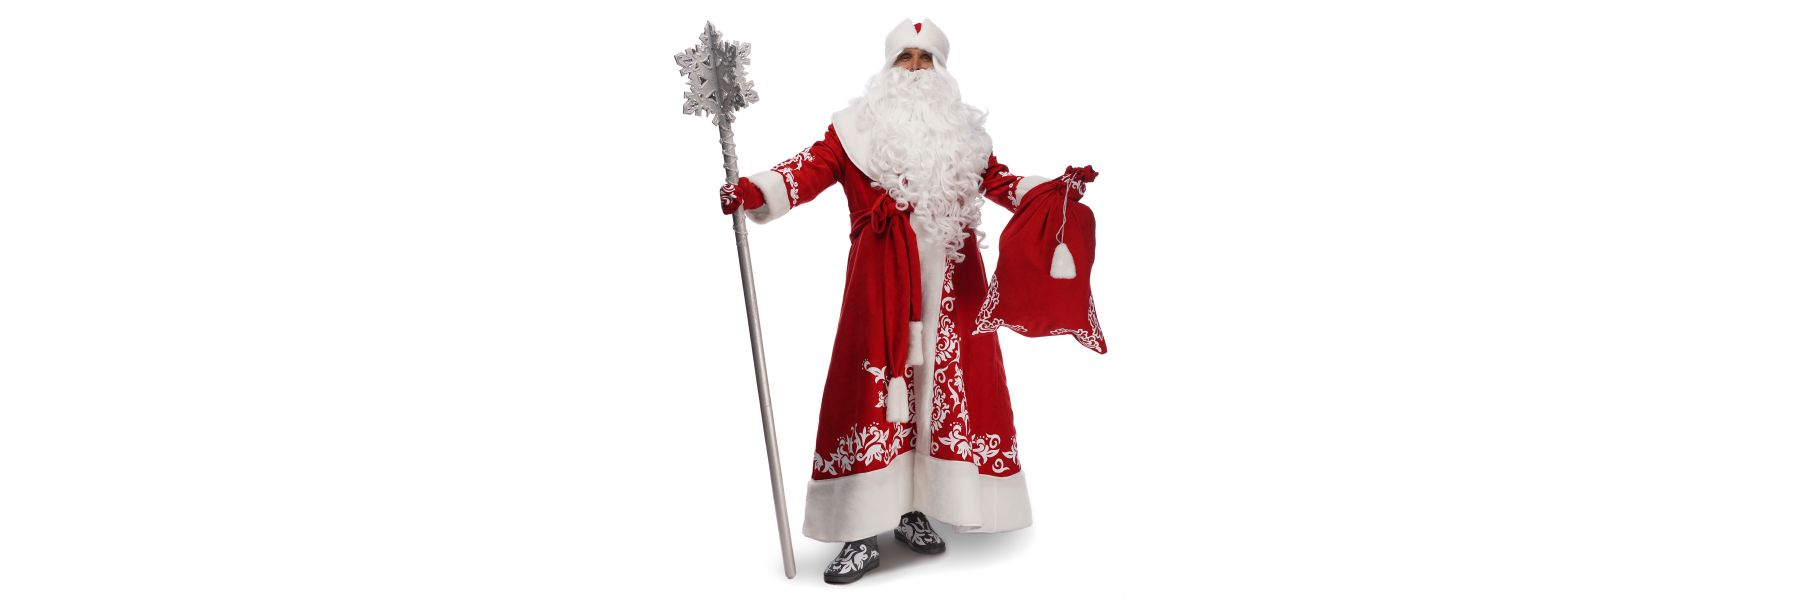 How to make a Santa Claus costume yourself: we create the magic of the holiday together